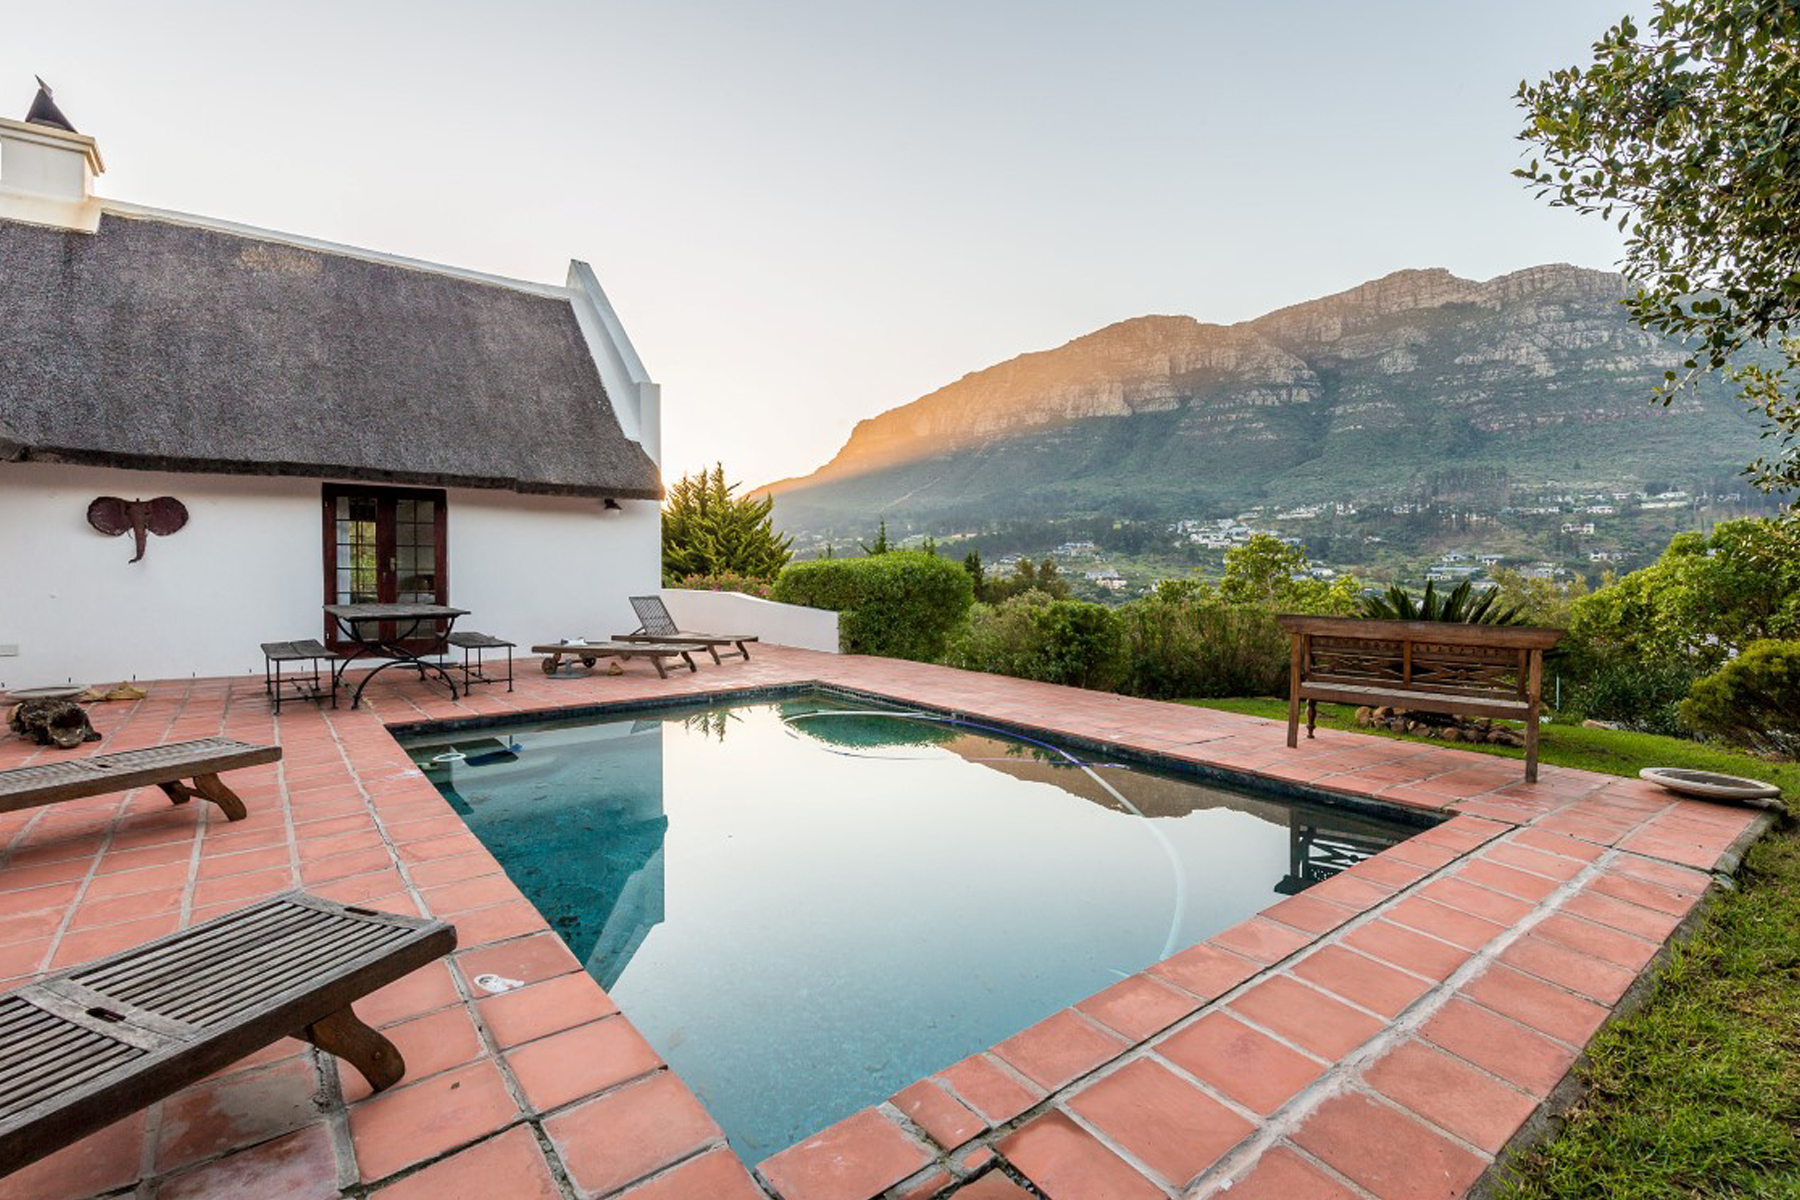 Single Family Home for Sale at Hout Bay Hout Bay, Western Cape, South Africa